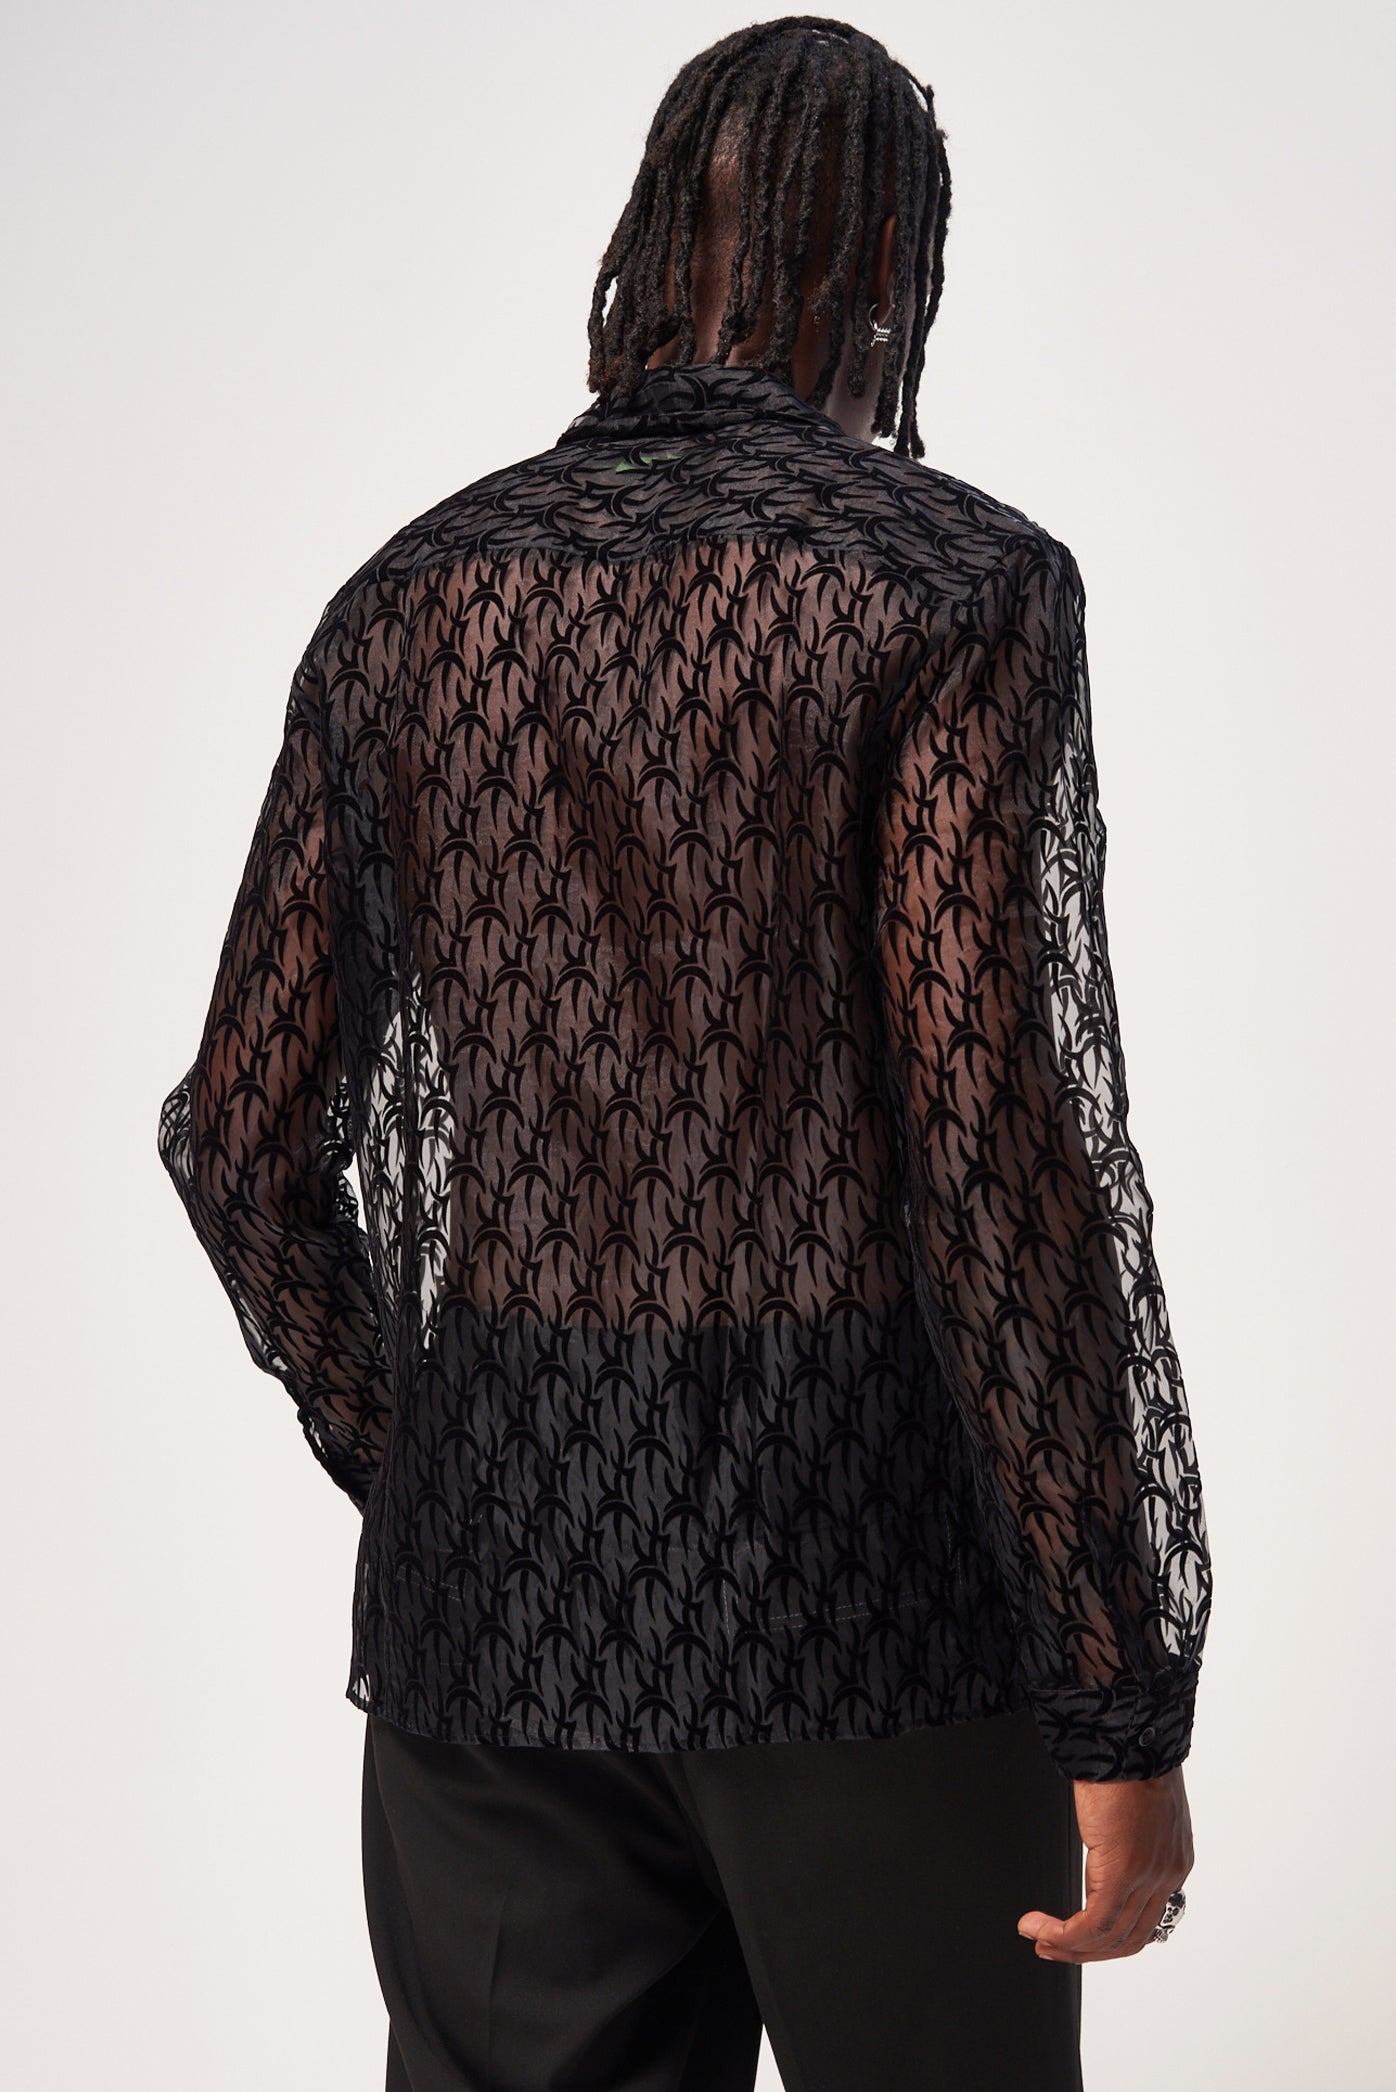 Black Tribal Flock Organza Long Sleeve Shirt